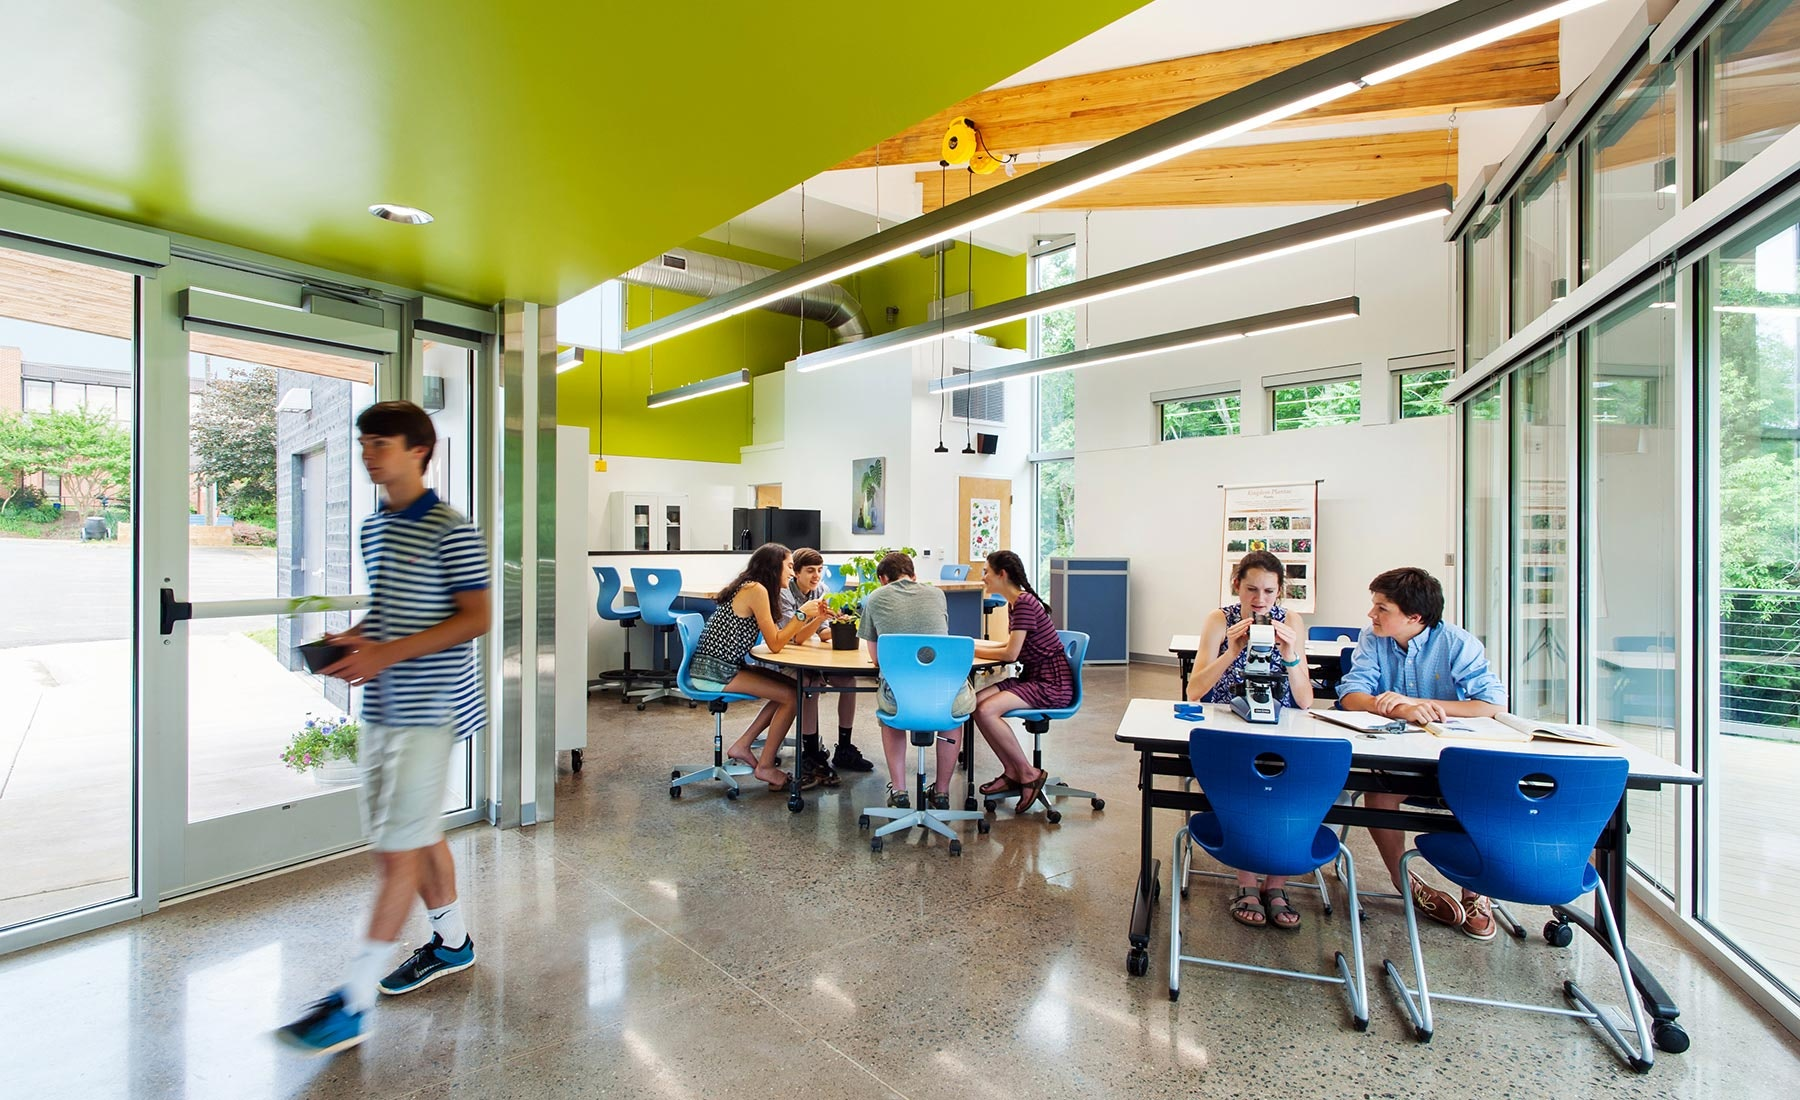 Western Albemarle High School | Environmental Architecture and Design